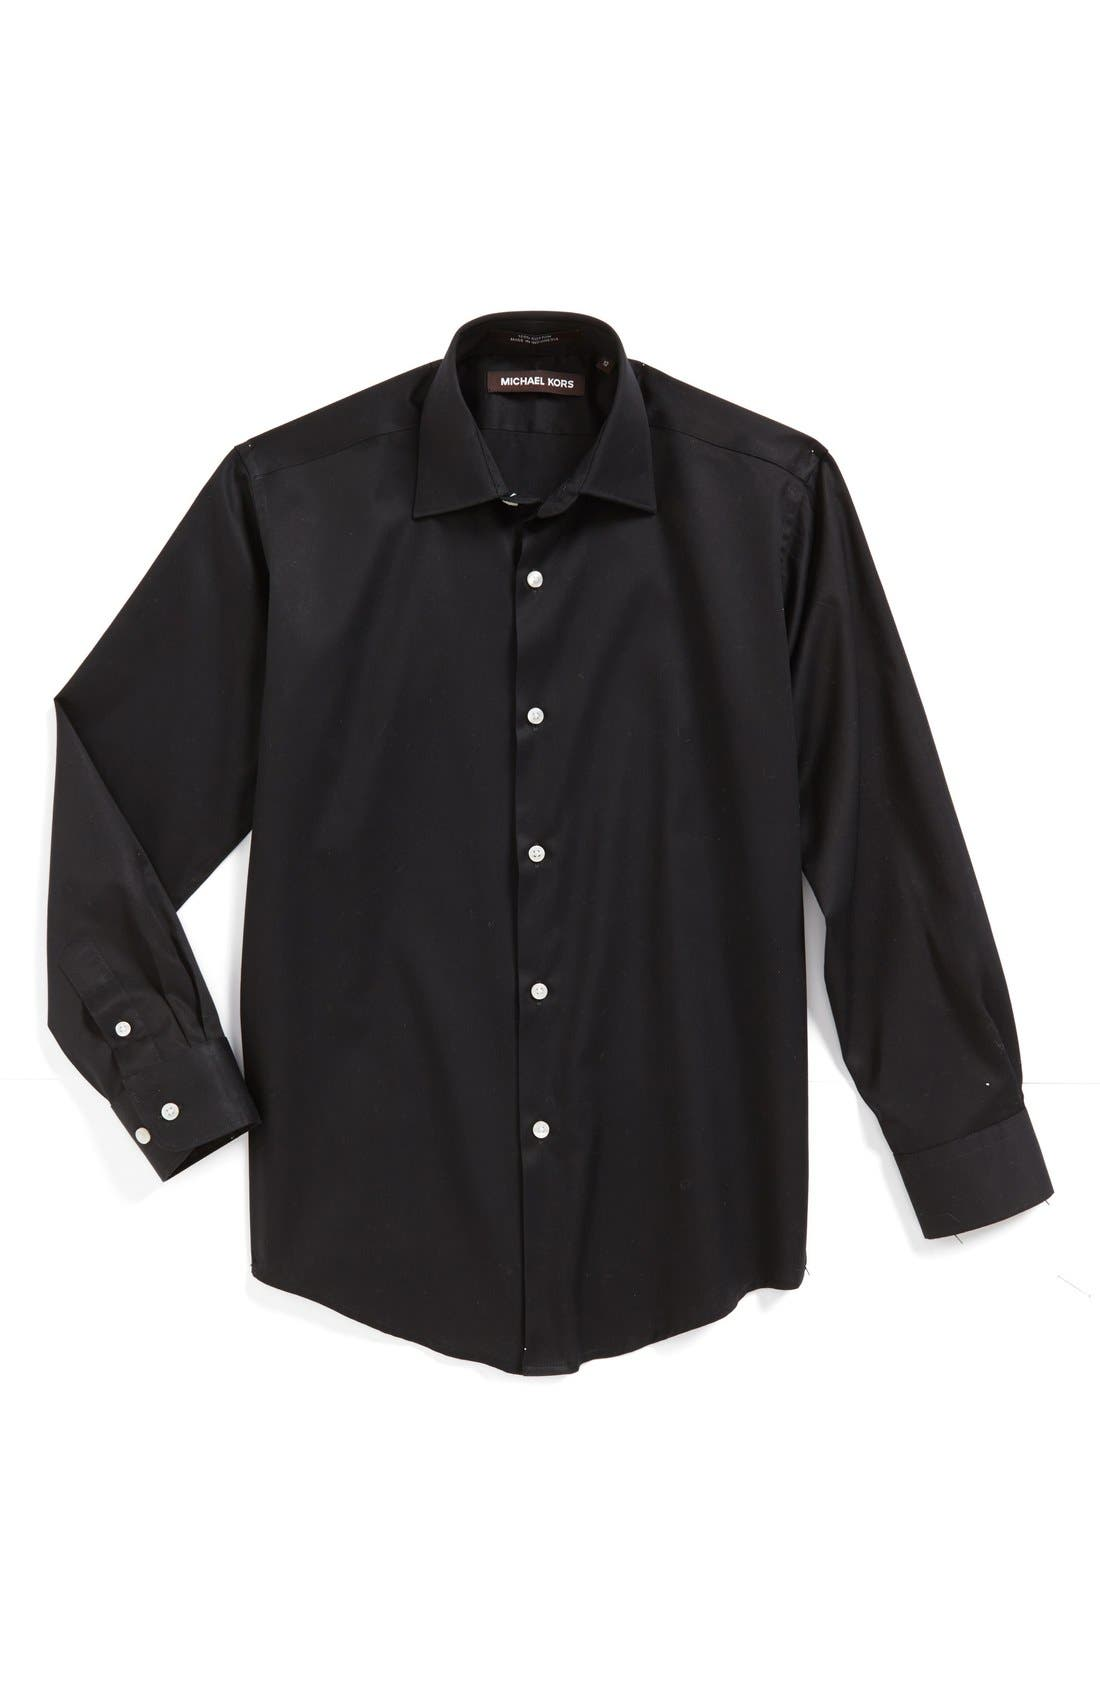 MICHAEL KORS,                             Solid Dress Shirt,                             Main thumbnail 1, color,                             BLACK